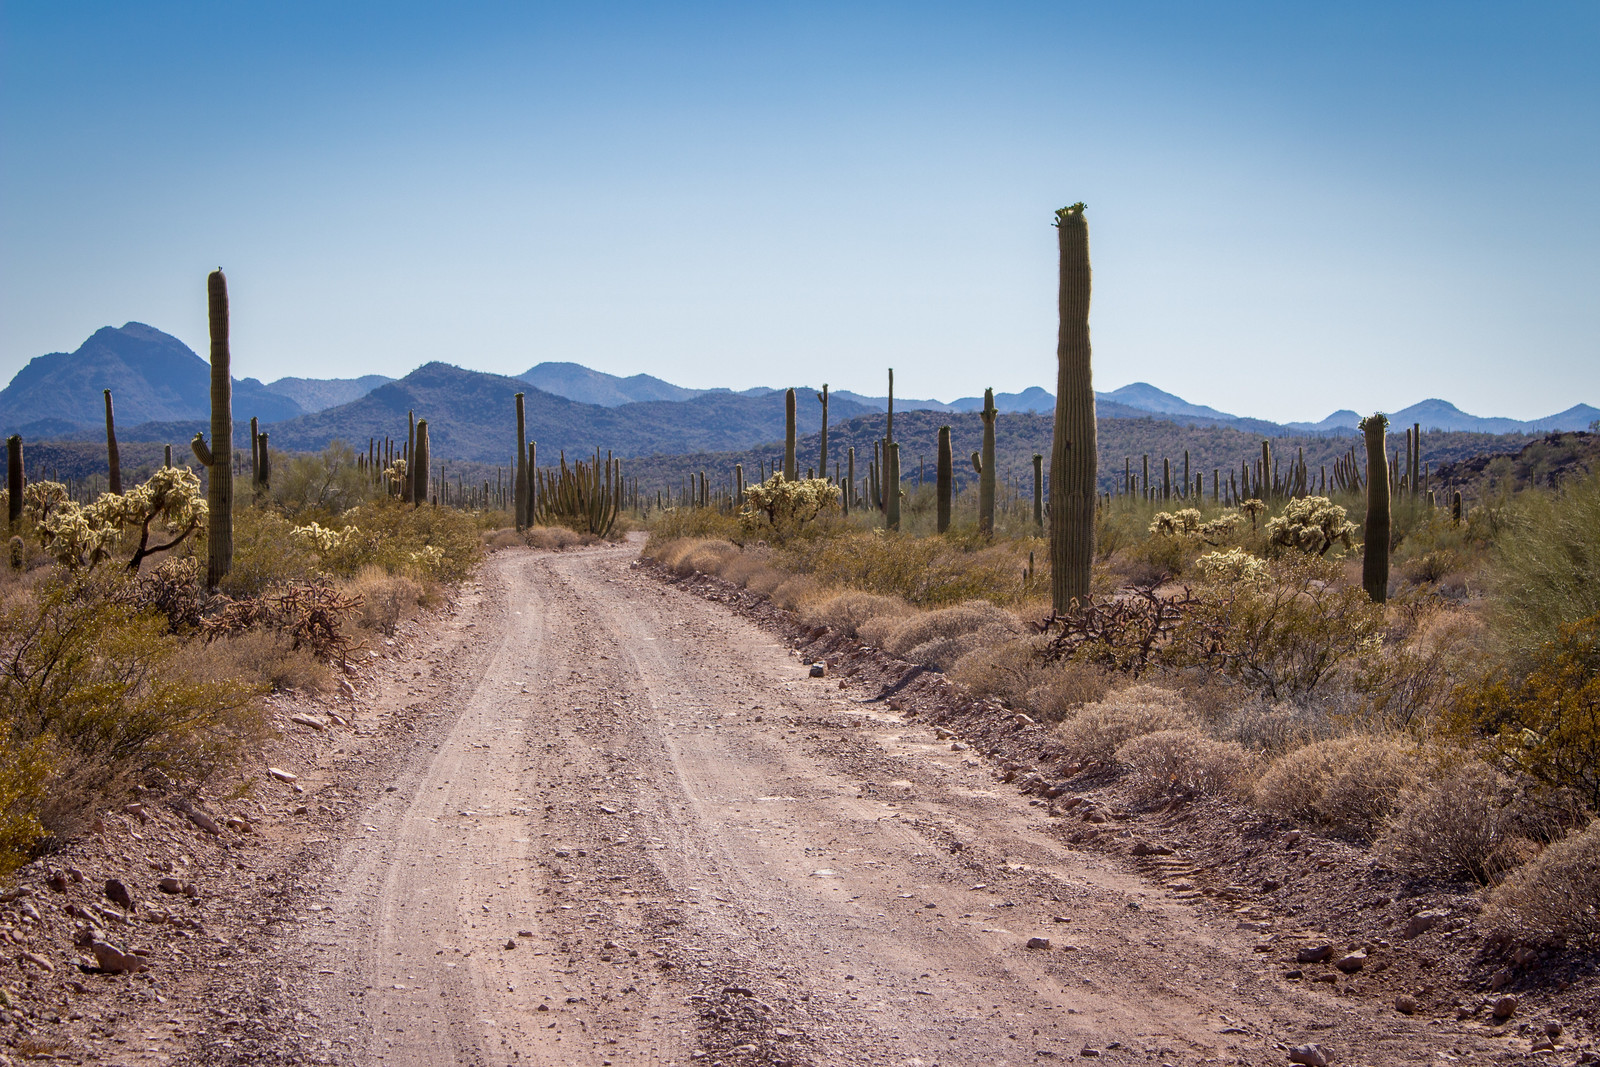 A dirt road with tall saguaro cactuses on either side with mountains in the distance